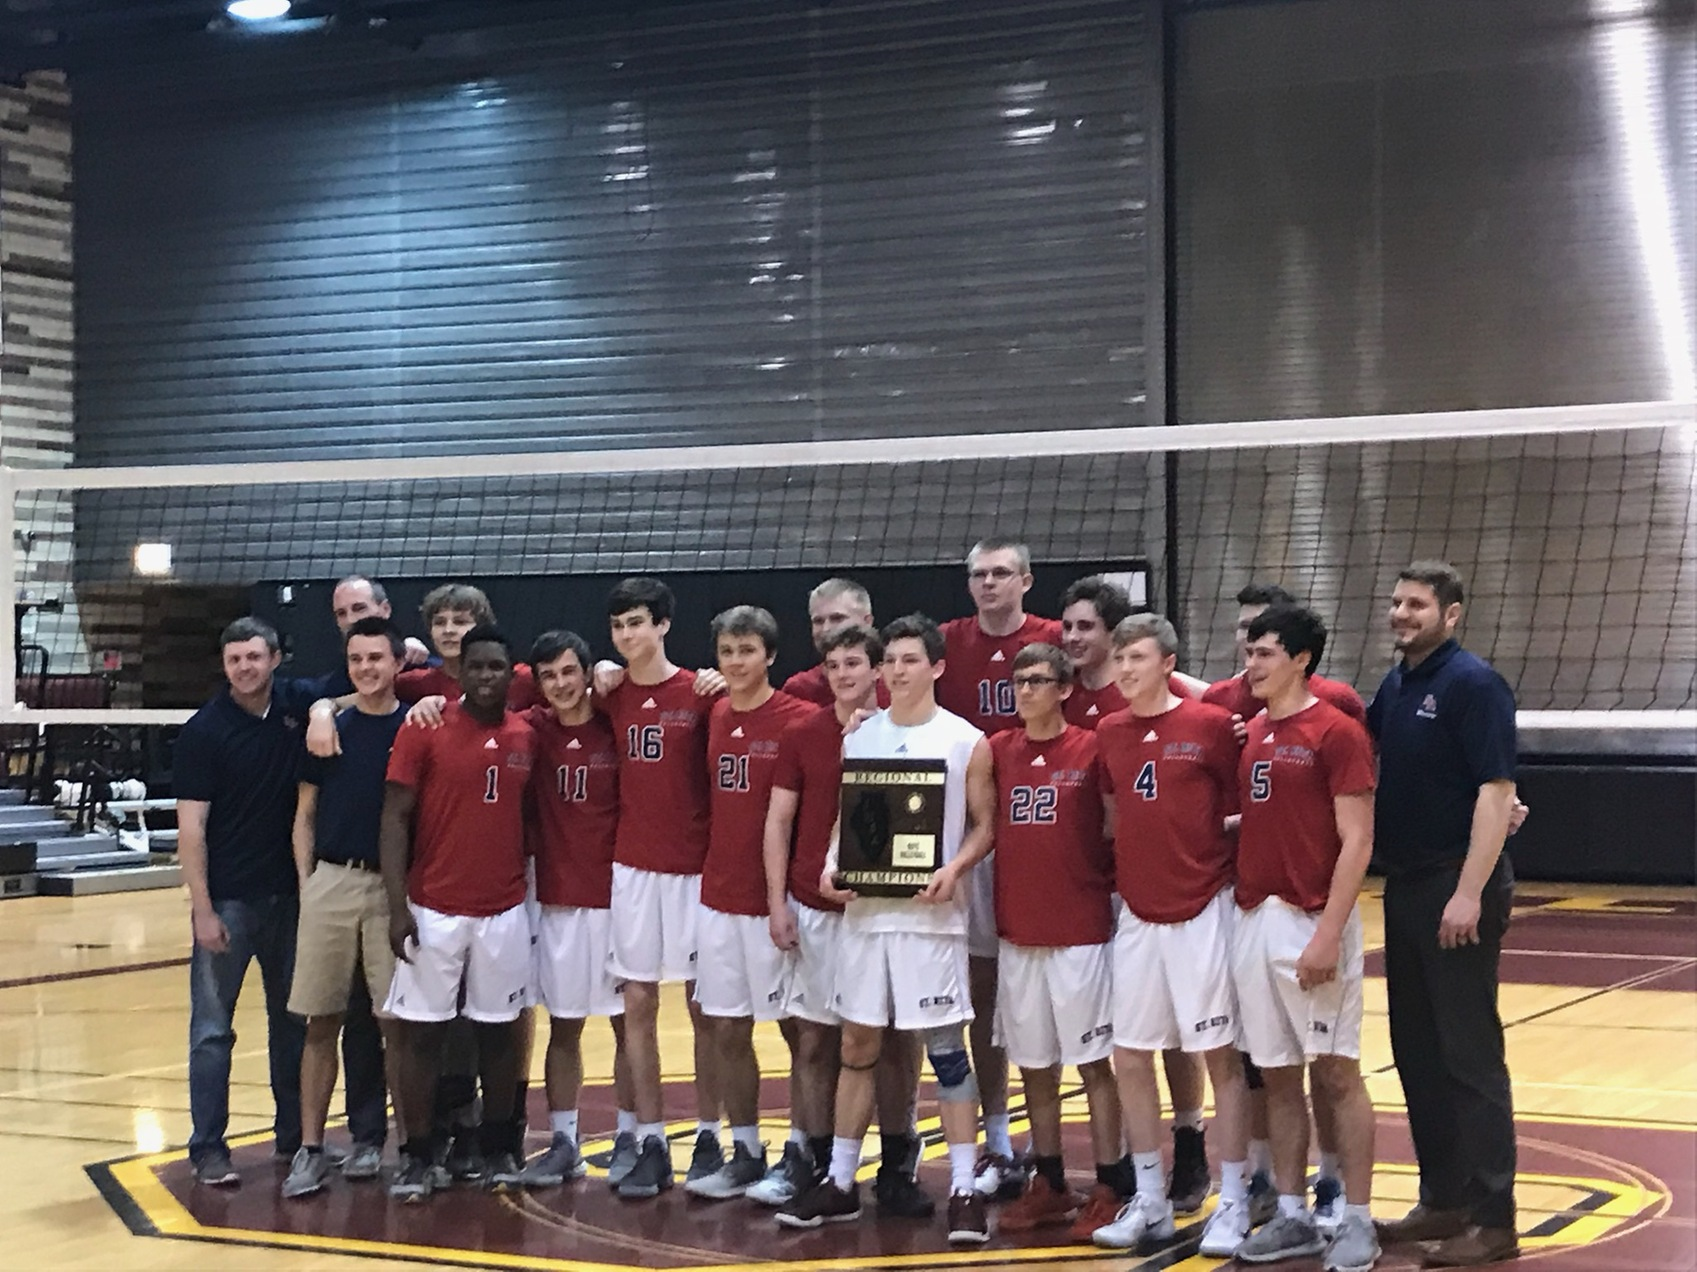 Congrats to the St. Rita Volleyball team for winning the Regional Finals!